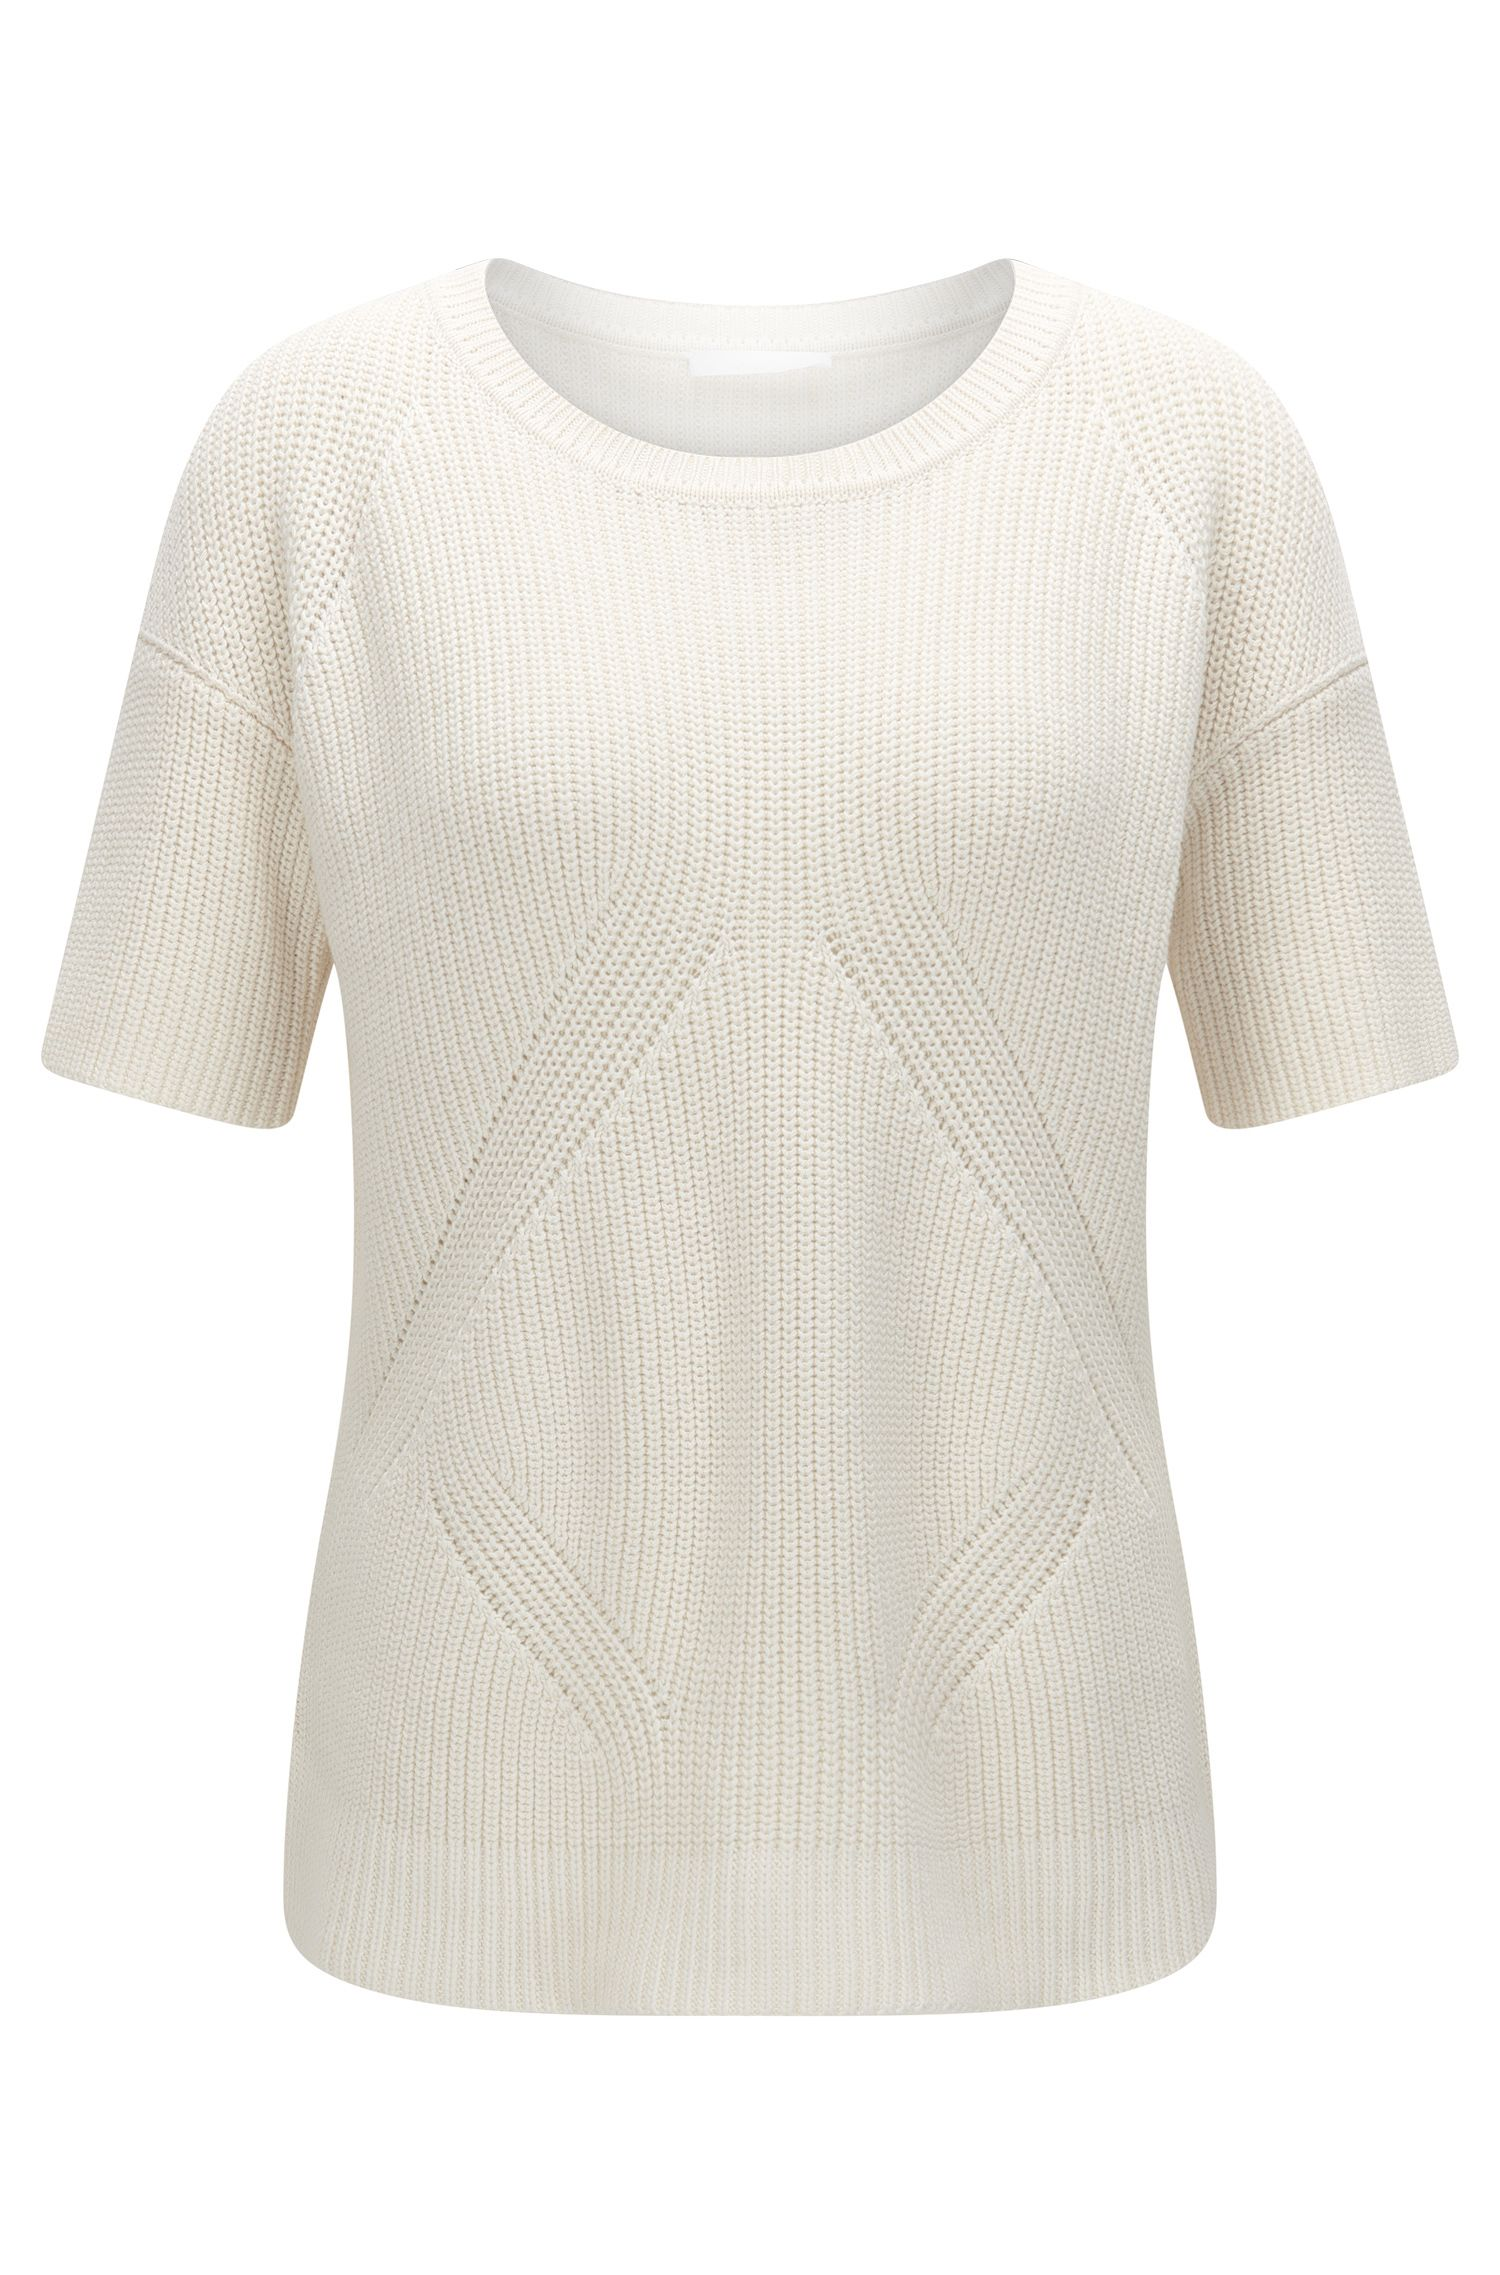 'Fiola' | Cotton Silk Cashmere Knit Top